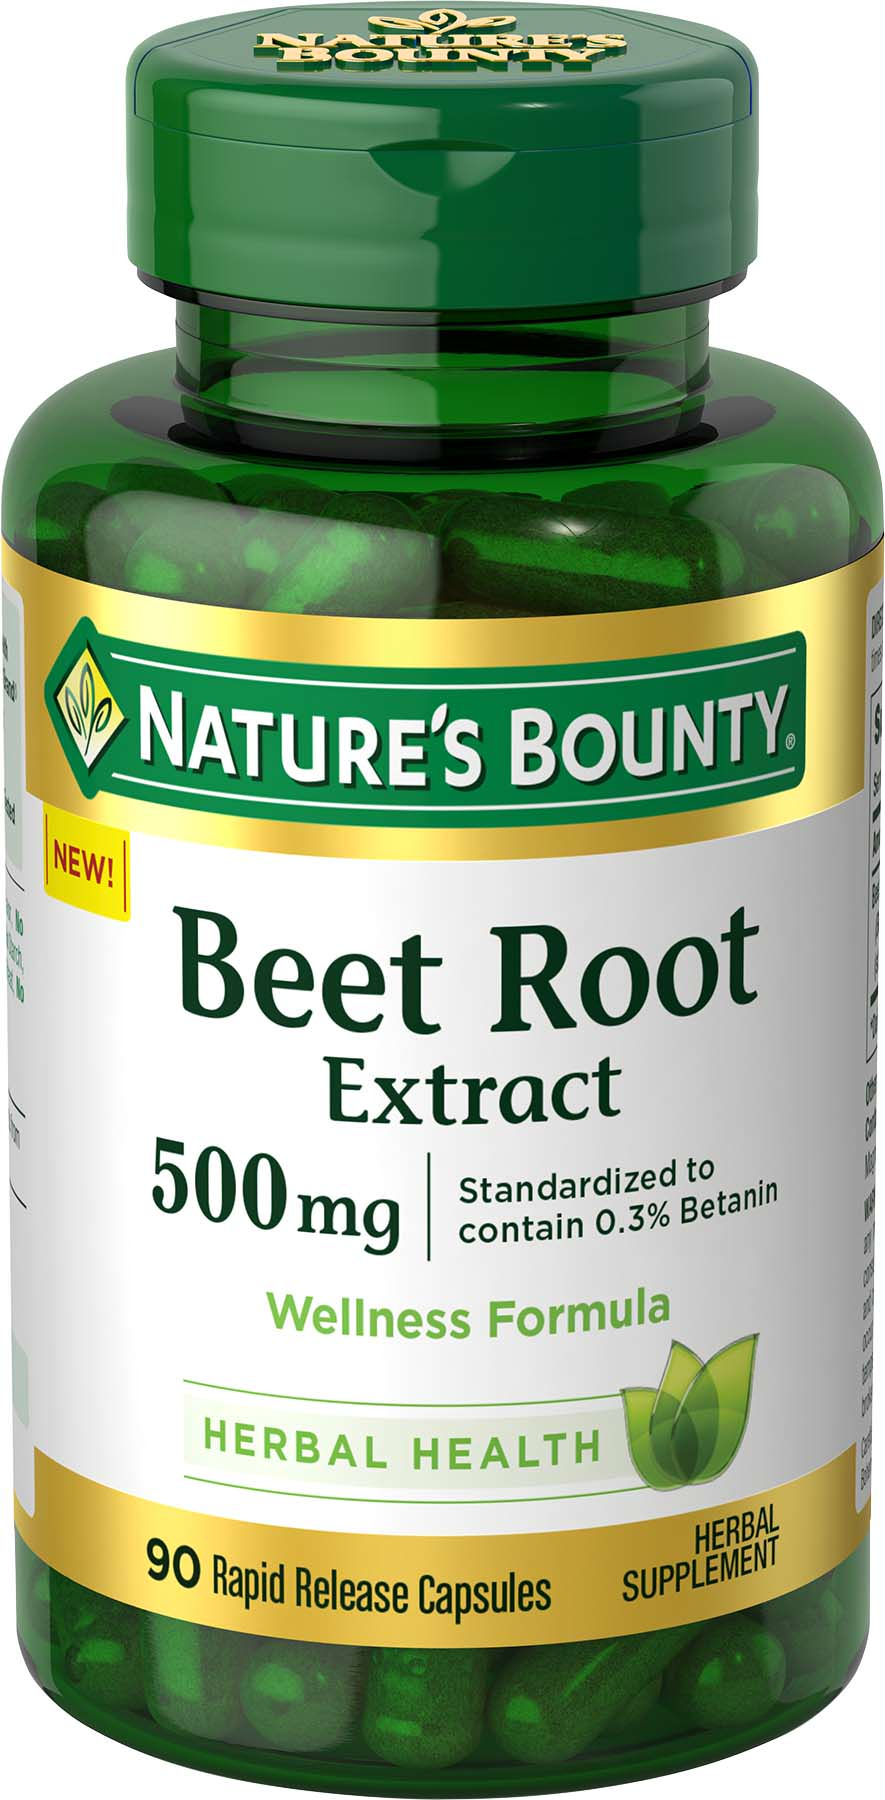 Nature's Bounty® Beet Root Extract 500 mg 90 Capsules ...